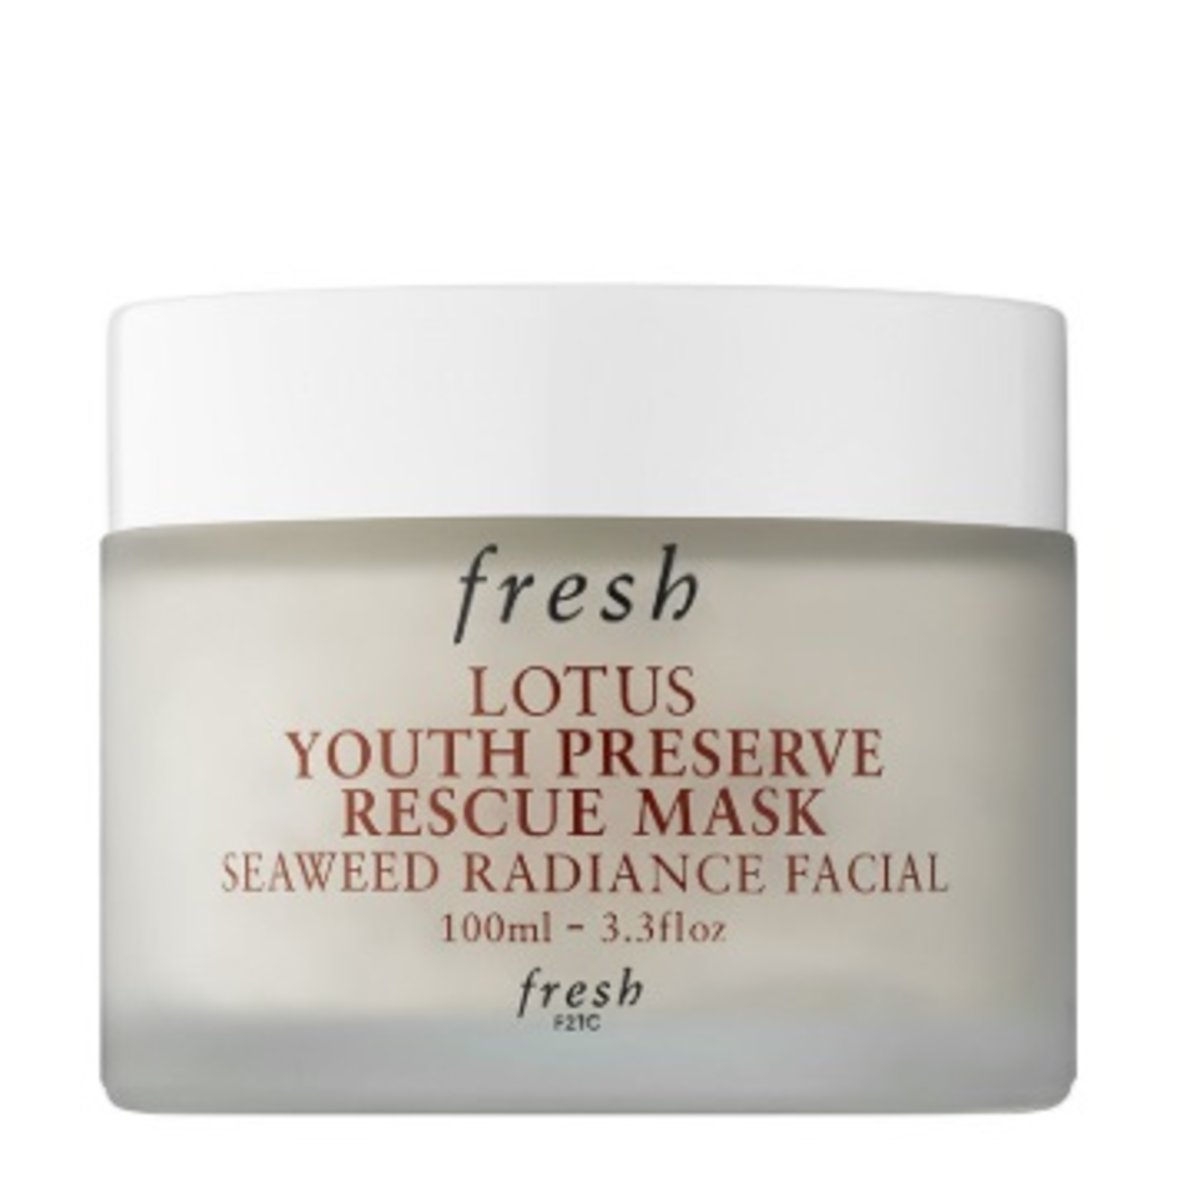 Lotus Youth Preserve Rescue Mask 100ml (809280133718) [Parallel Import]